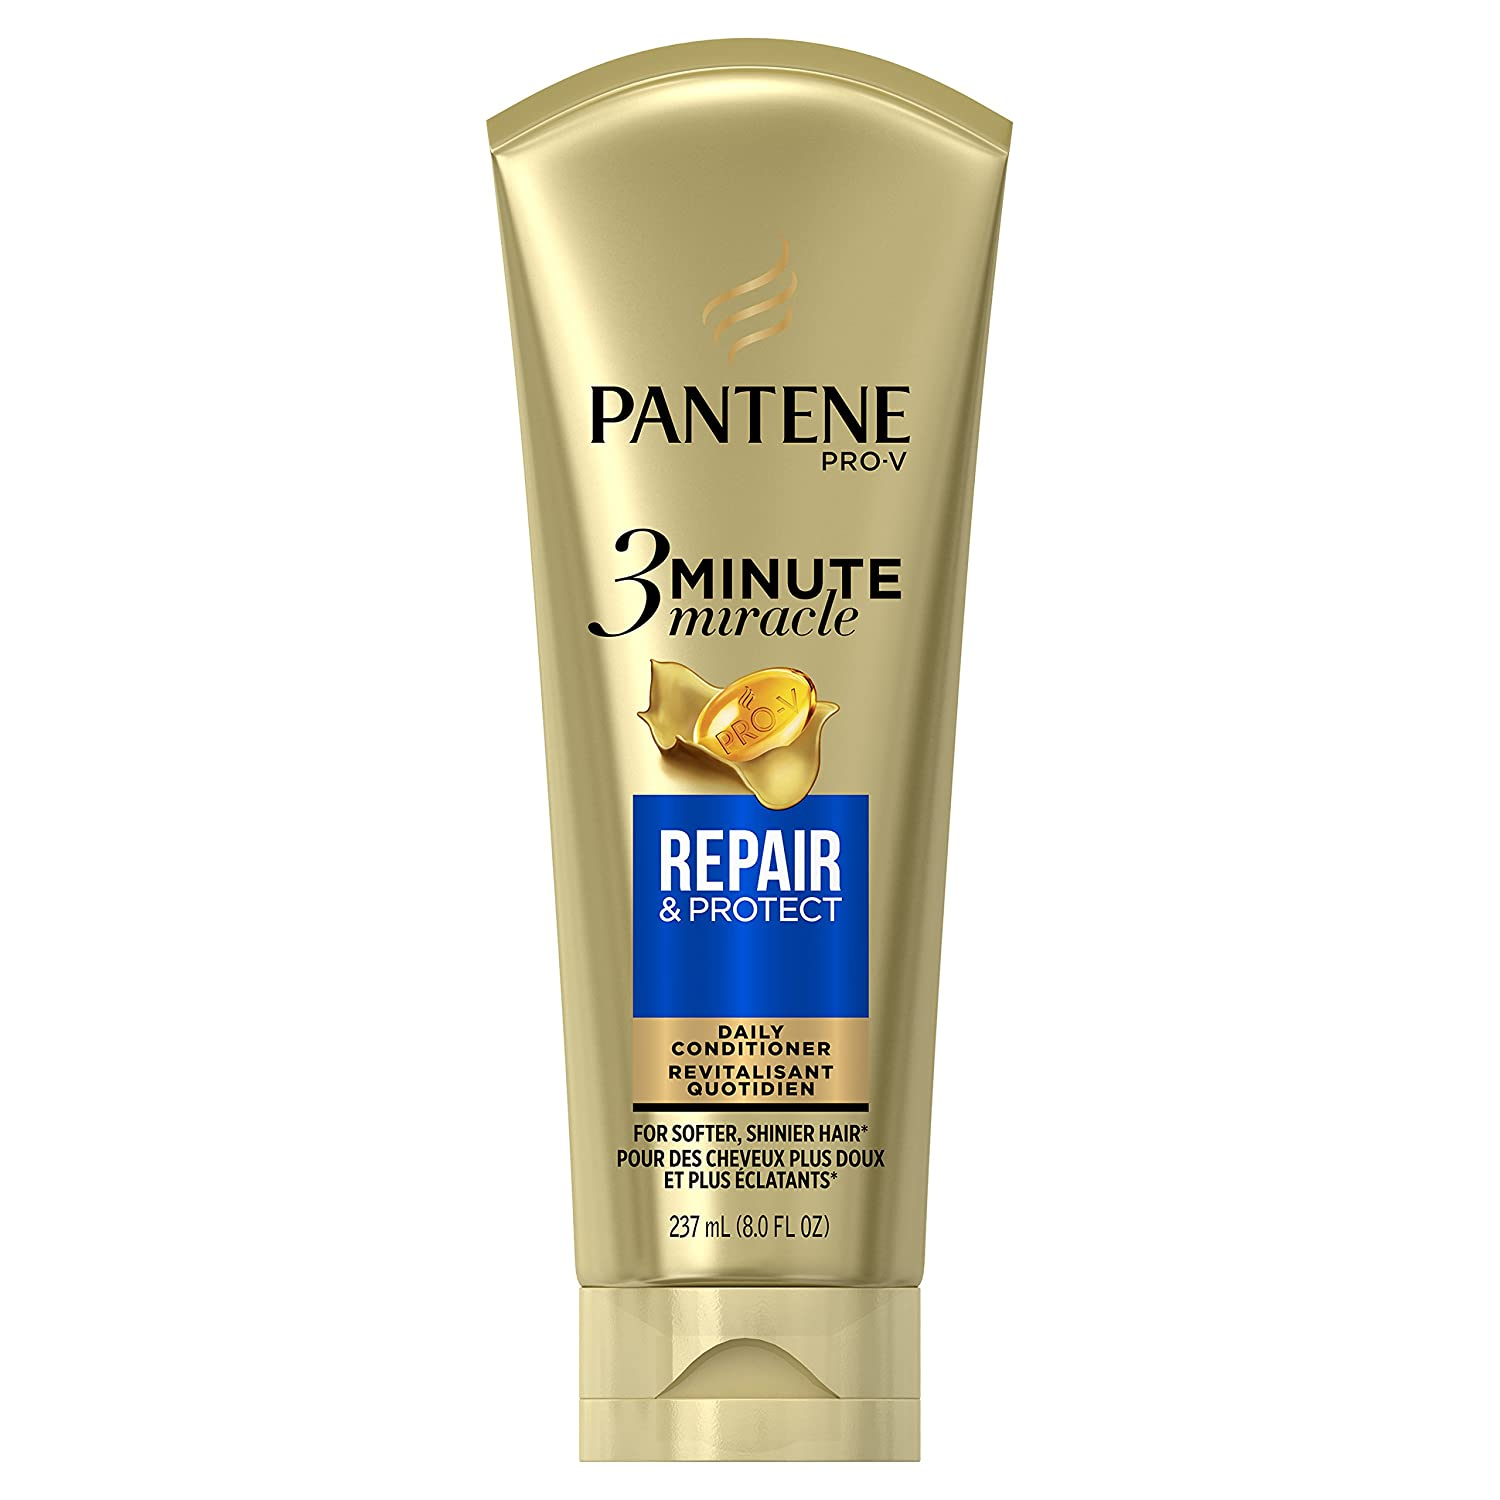 Pantene Repair & Protect 3 Minute Miracle Daily Conditioner, 8.0 fl oz (Packaging May Vary)